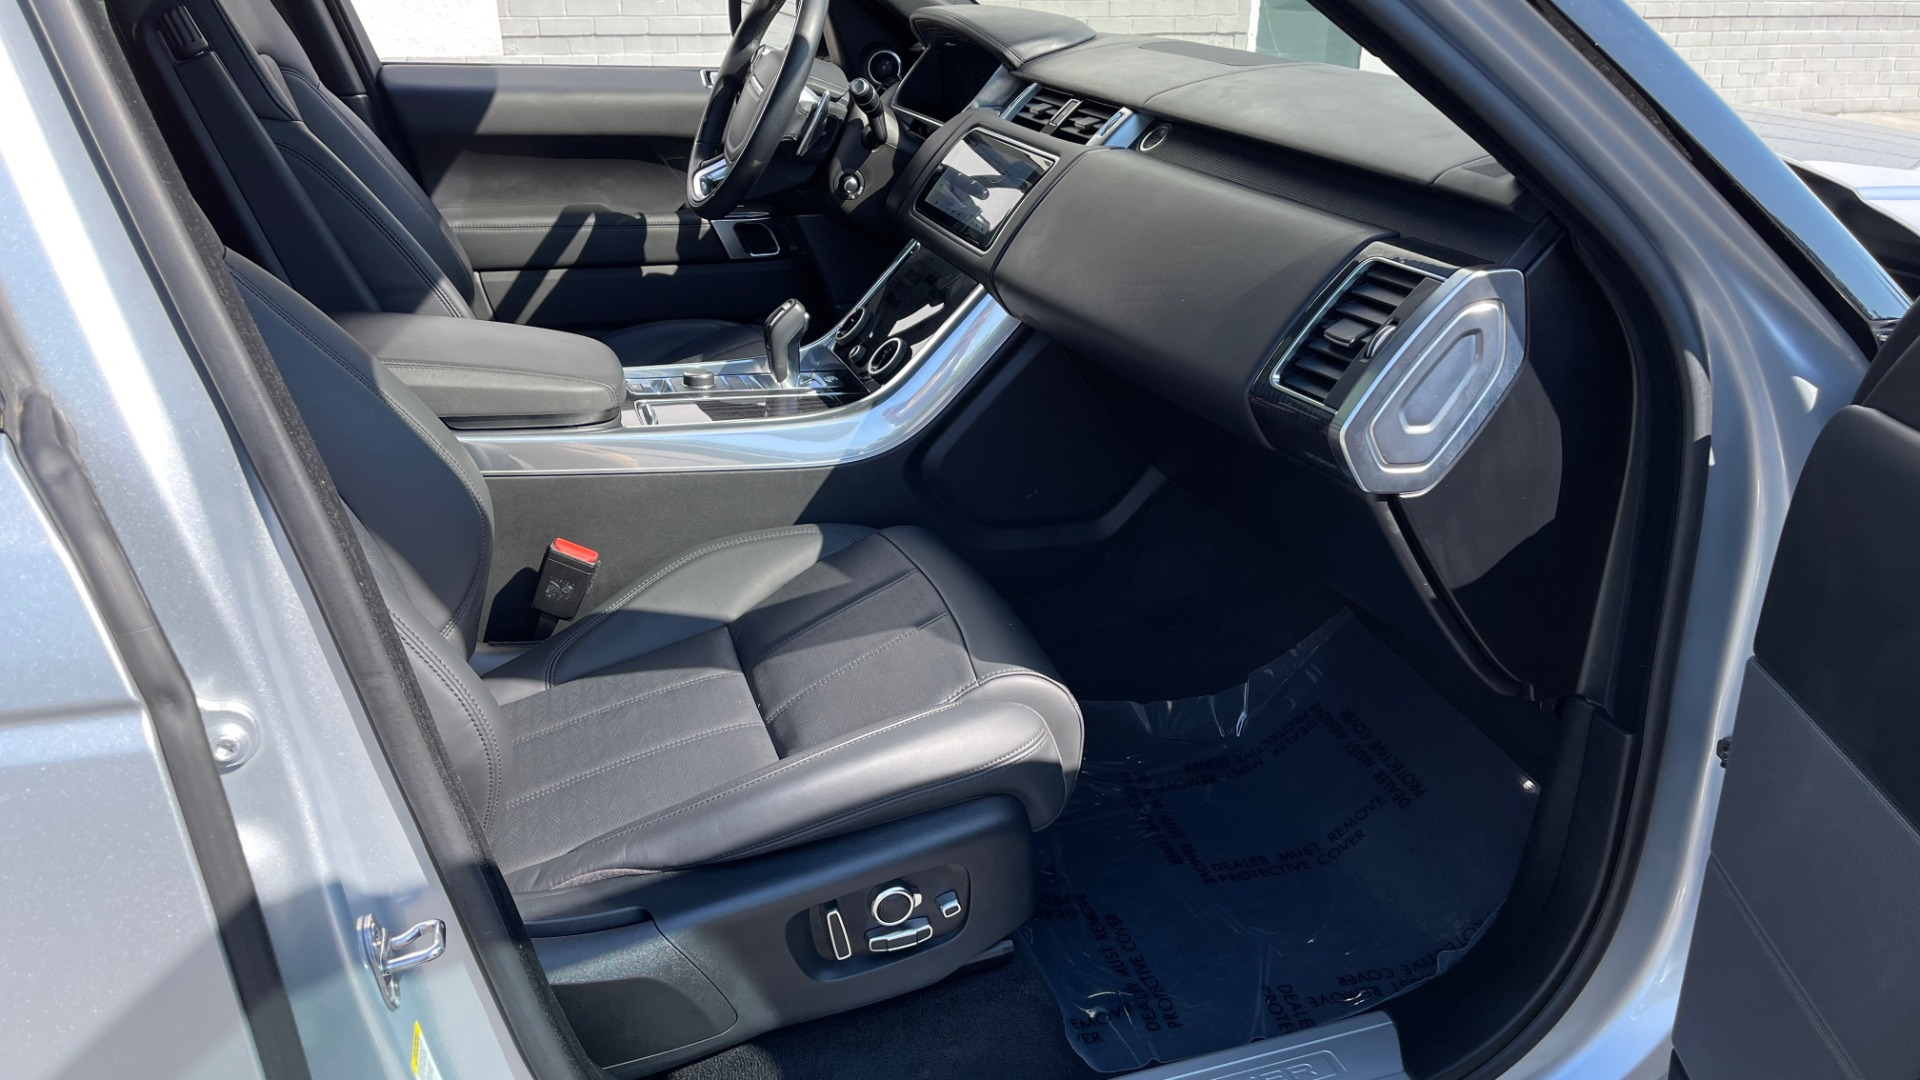 Used 2019 Land Rover RANGE ROVER SPORT HSE DYNAMIC / 3.0L SC V6 / 8-SPD / APPLE / NAV / SUNROOF / REARVIEW for sale Sold at Formula Imports in Charlotte NC 28227 83